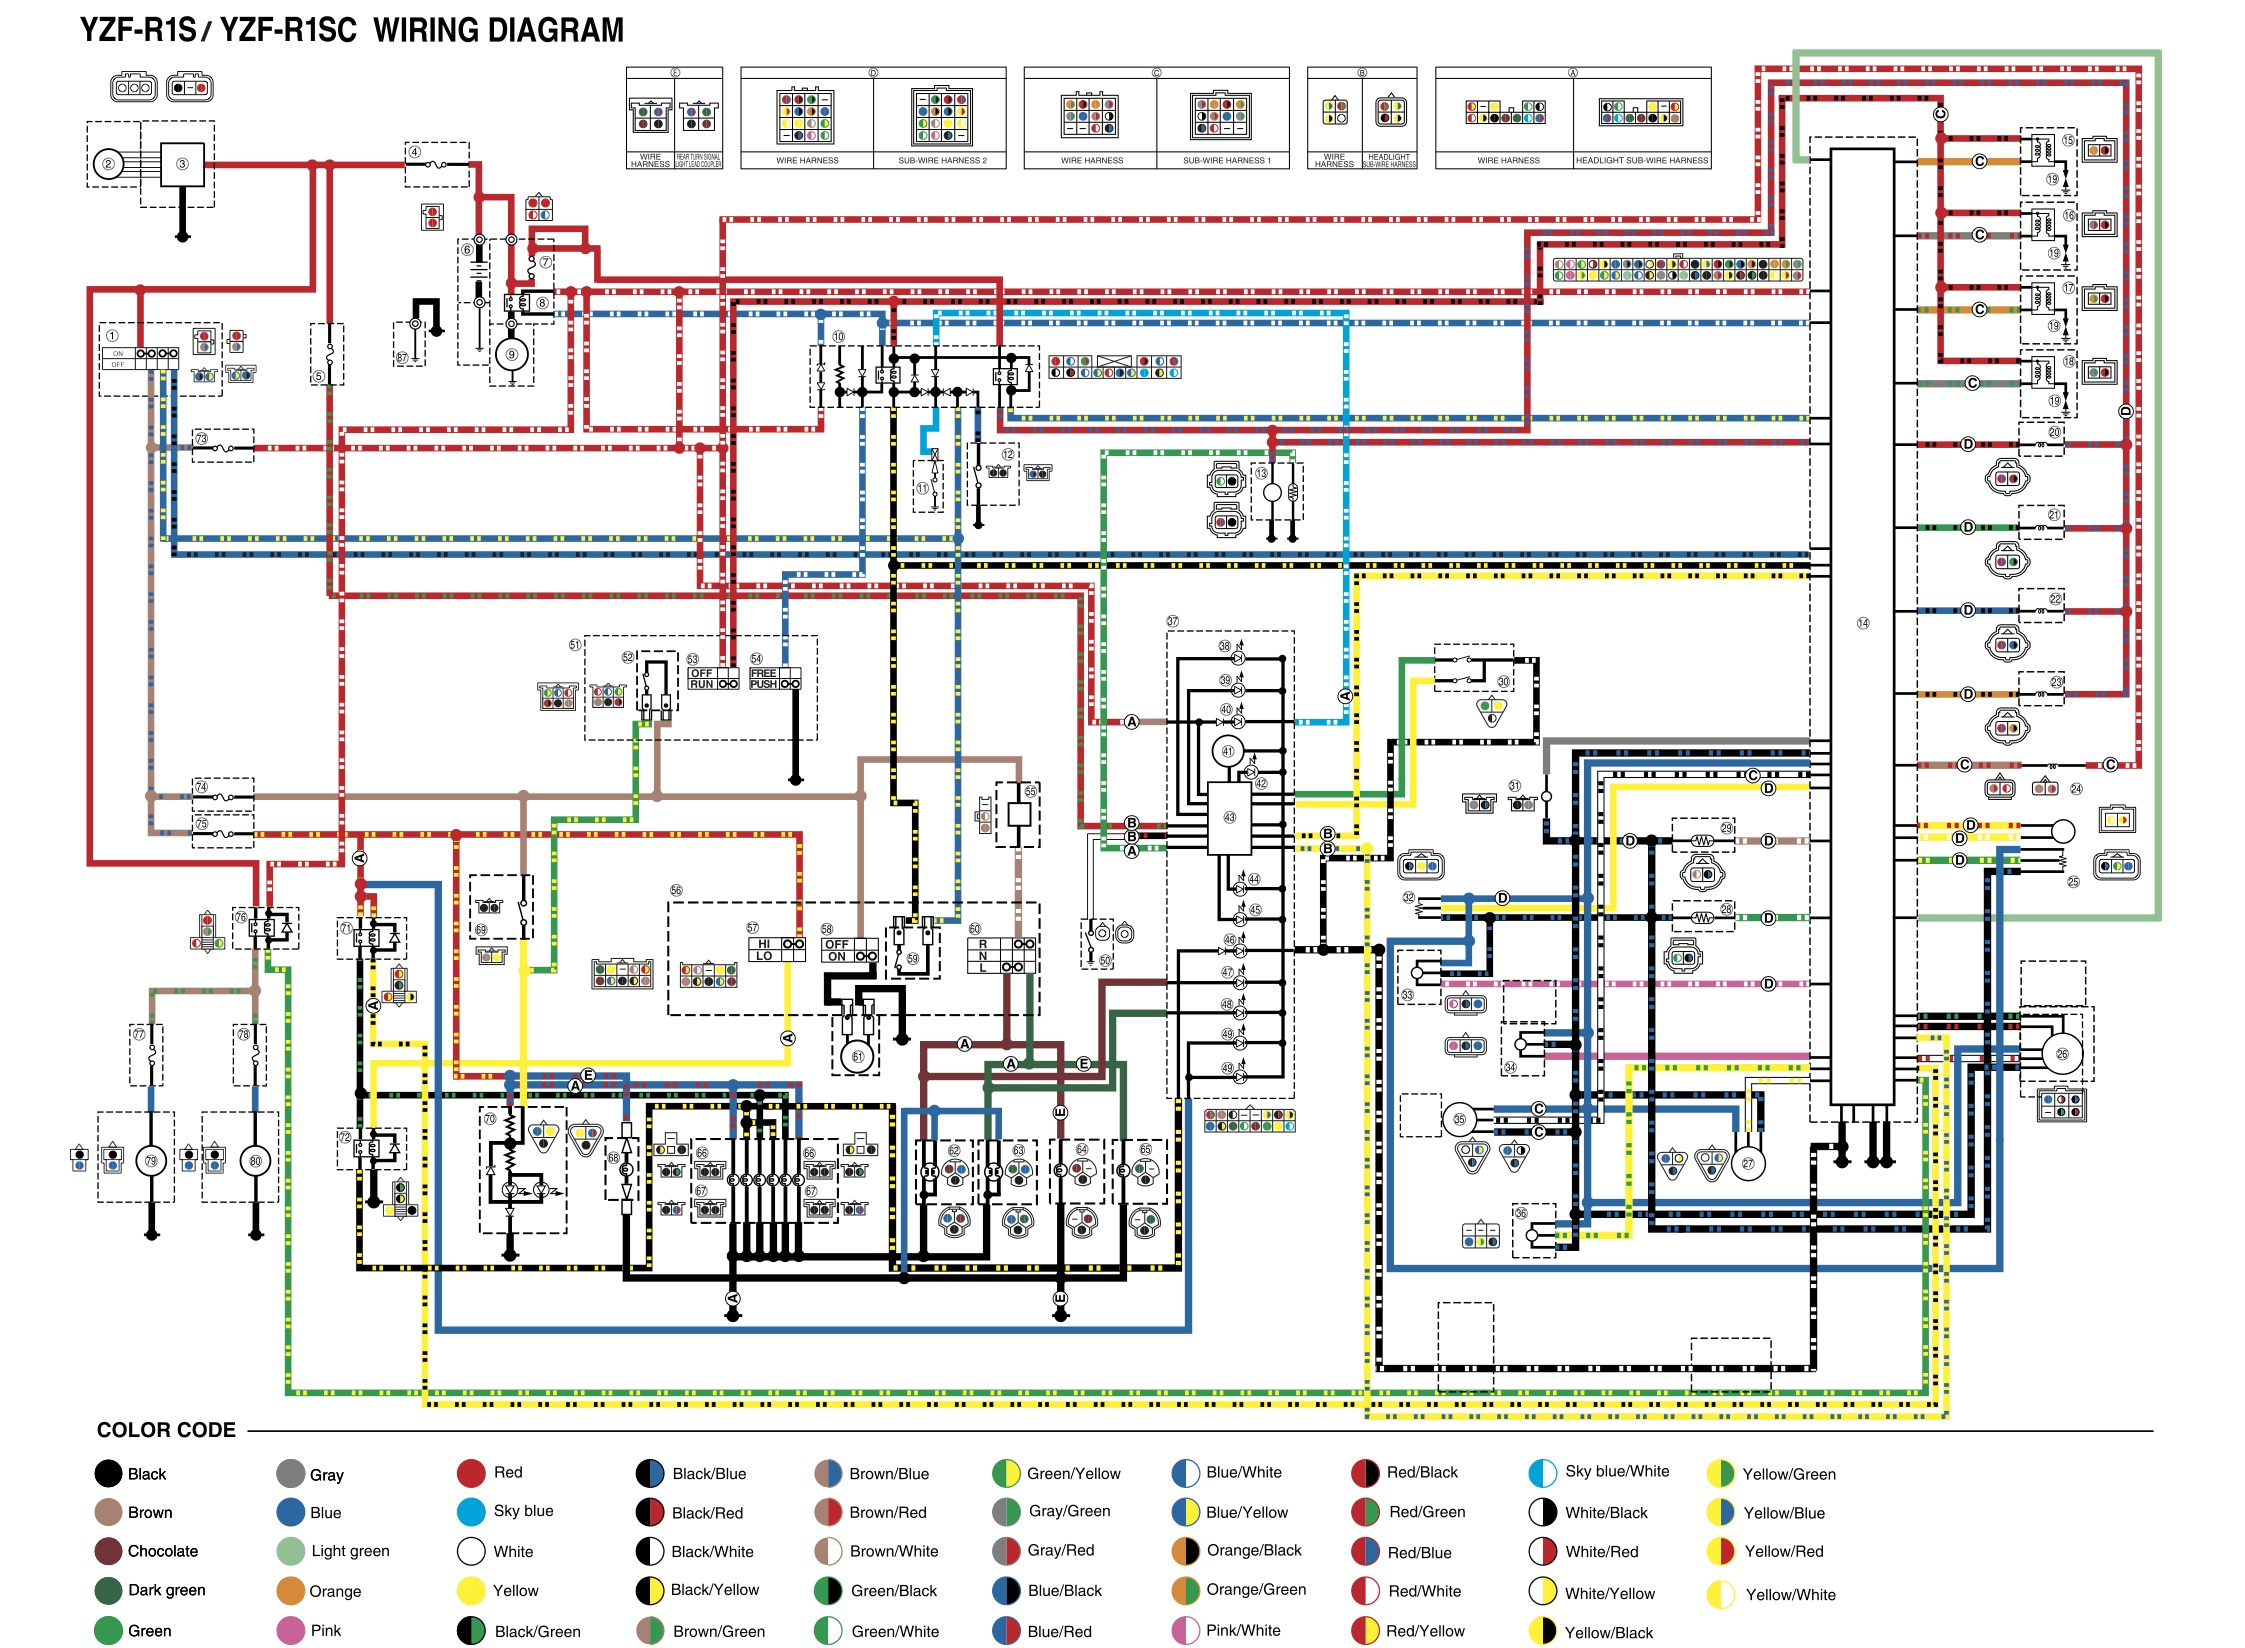 04R1_wiring_diagram Yamaha Rhino Fuel Pump Wiring Diagrams on yamaha rhino carburetor diagram, vw fuel pump diagram, snowmobile fuel pump diagram, polaris fuel pump diagram, suzuki fuel pump diagram, ford fuel pump diagram, kawasaki fuel pump diagram, rhino 660 fuel pump diagram, yamaha rhino relay diagram, yamaha rhino electrical, chevy fuel pump diagram, yamaha rhino problems, arctic cat fuel pump diagram, golf cart fuel pump diagram, injection pump diagram, yamaha rhino spy, atv fuel pump diagram, cub cadet fuel pump diagram, brute pressure washer pump diagram, yamaha rhino 660 parts diagram,